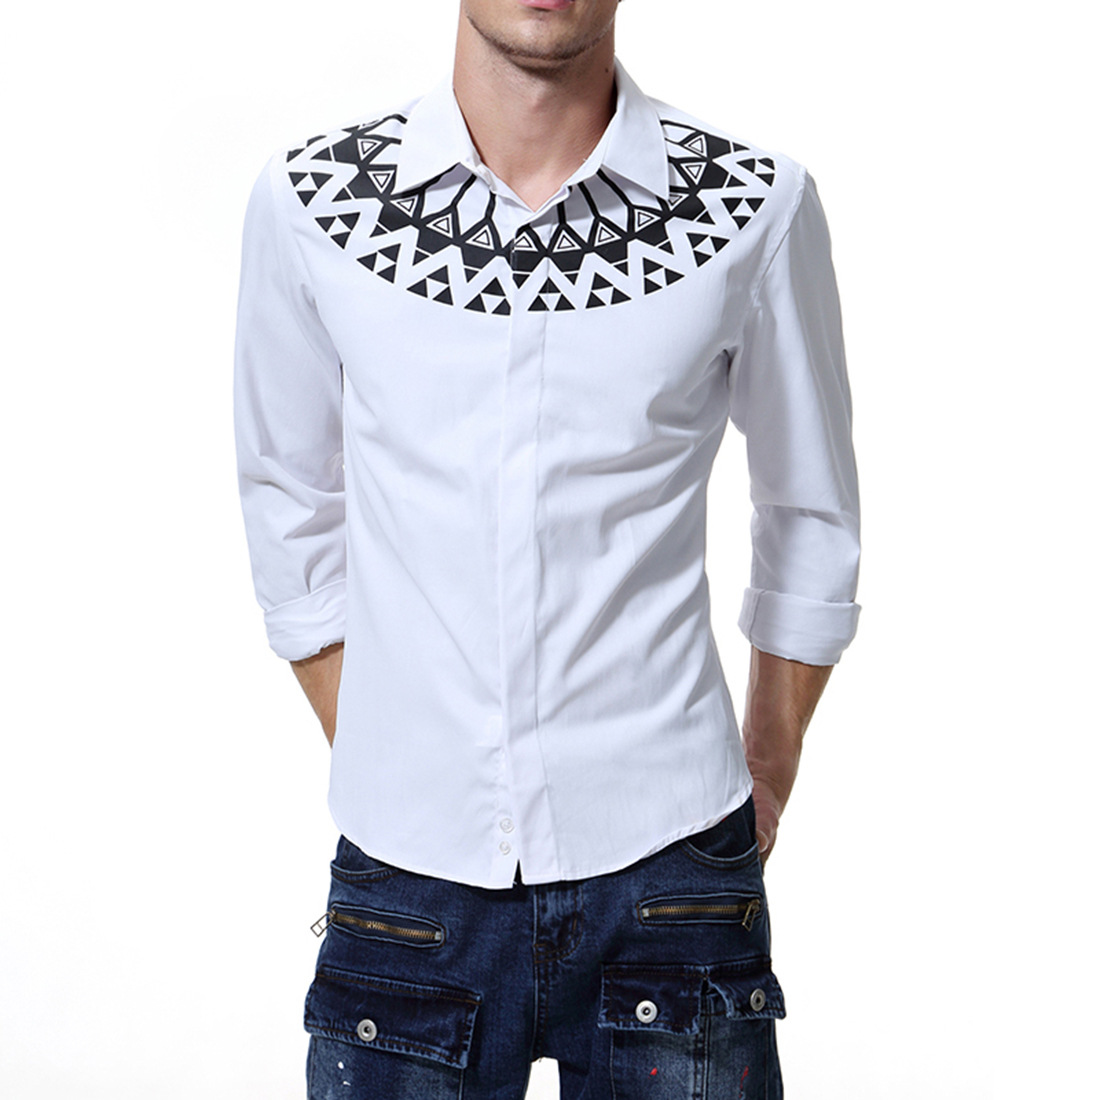 2019 Spring New Style Foreign Trade Large Size Men'S Wear Casual Printed Silky Long-sleeved Shirt Slim Fit MEN'S Shirt D008